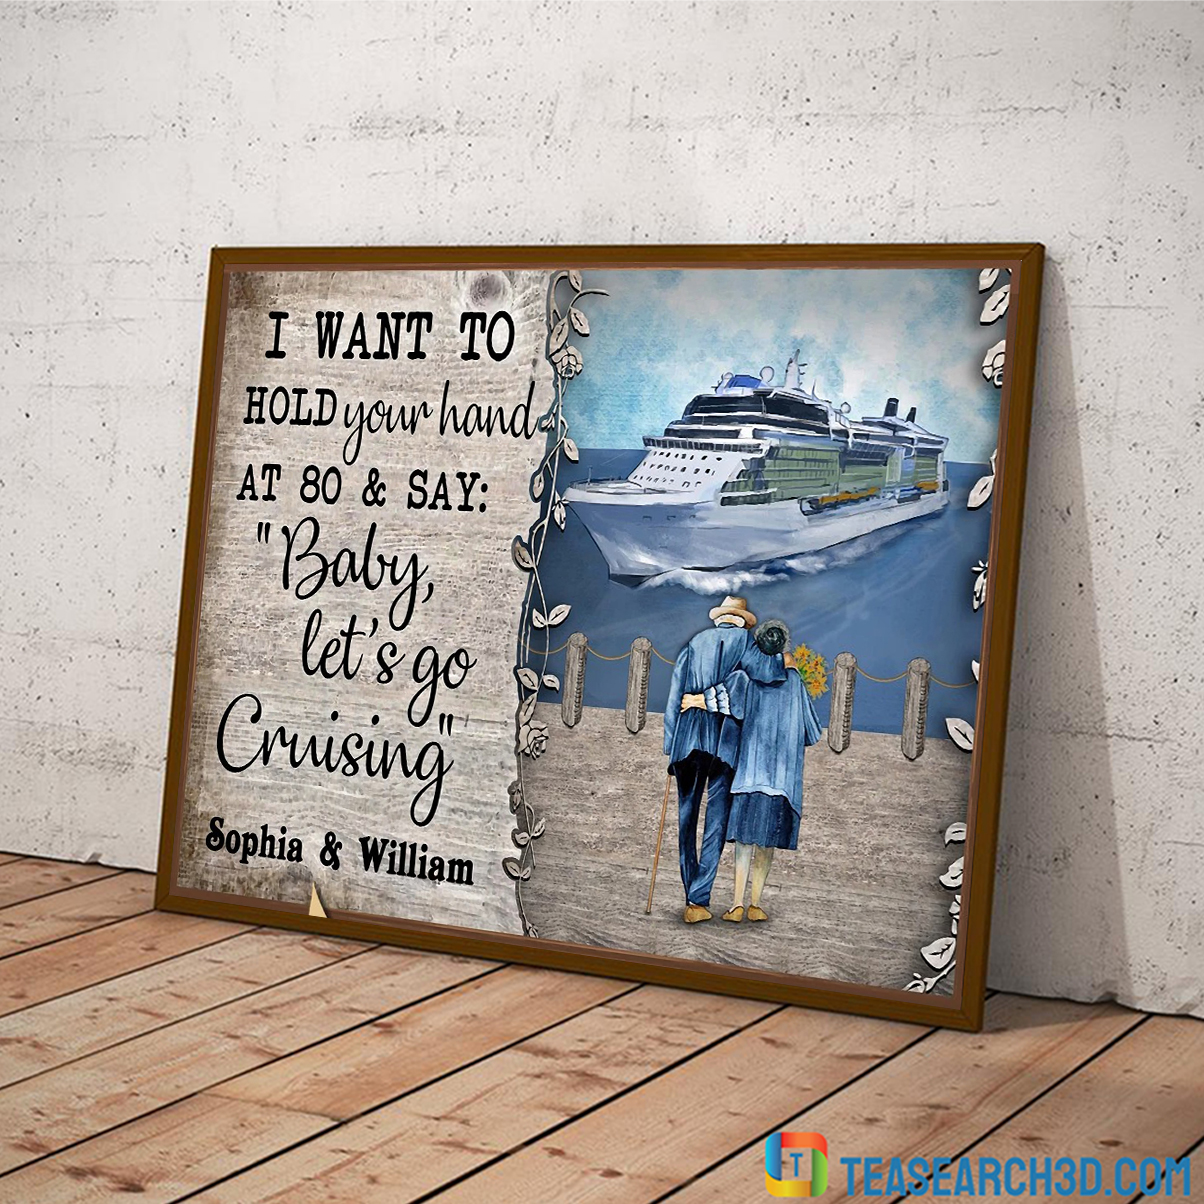 Personalized custom name cruising harbor baby let's go poster A4